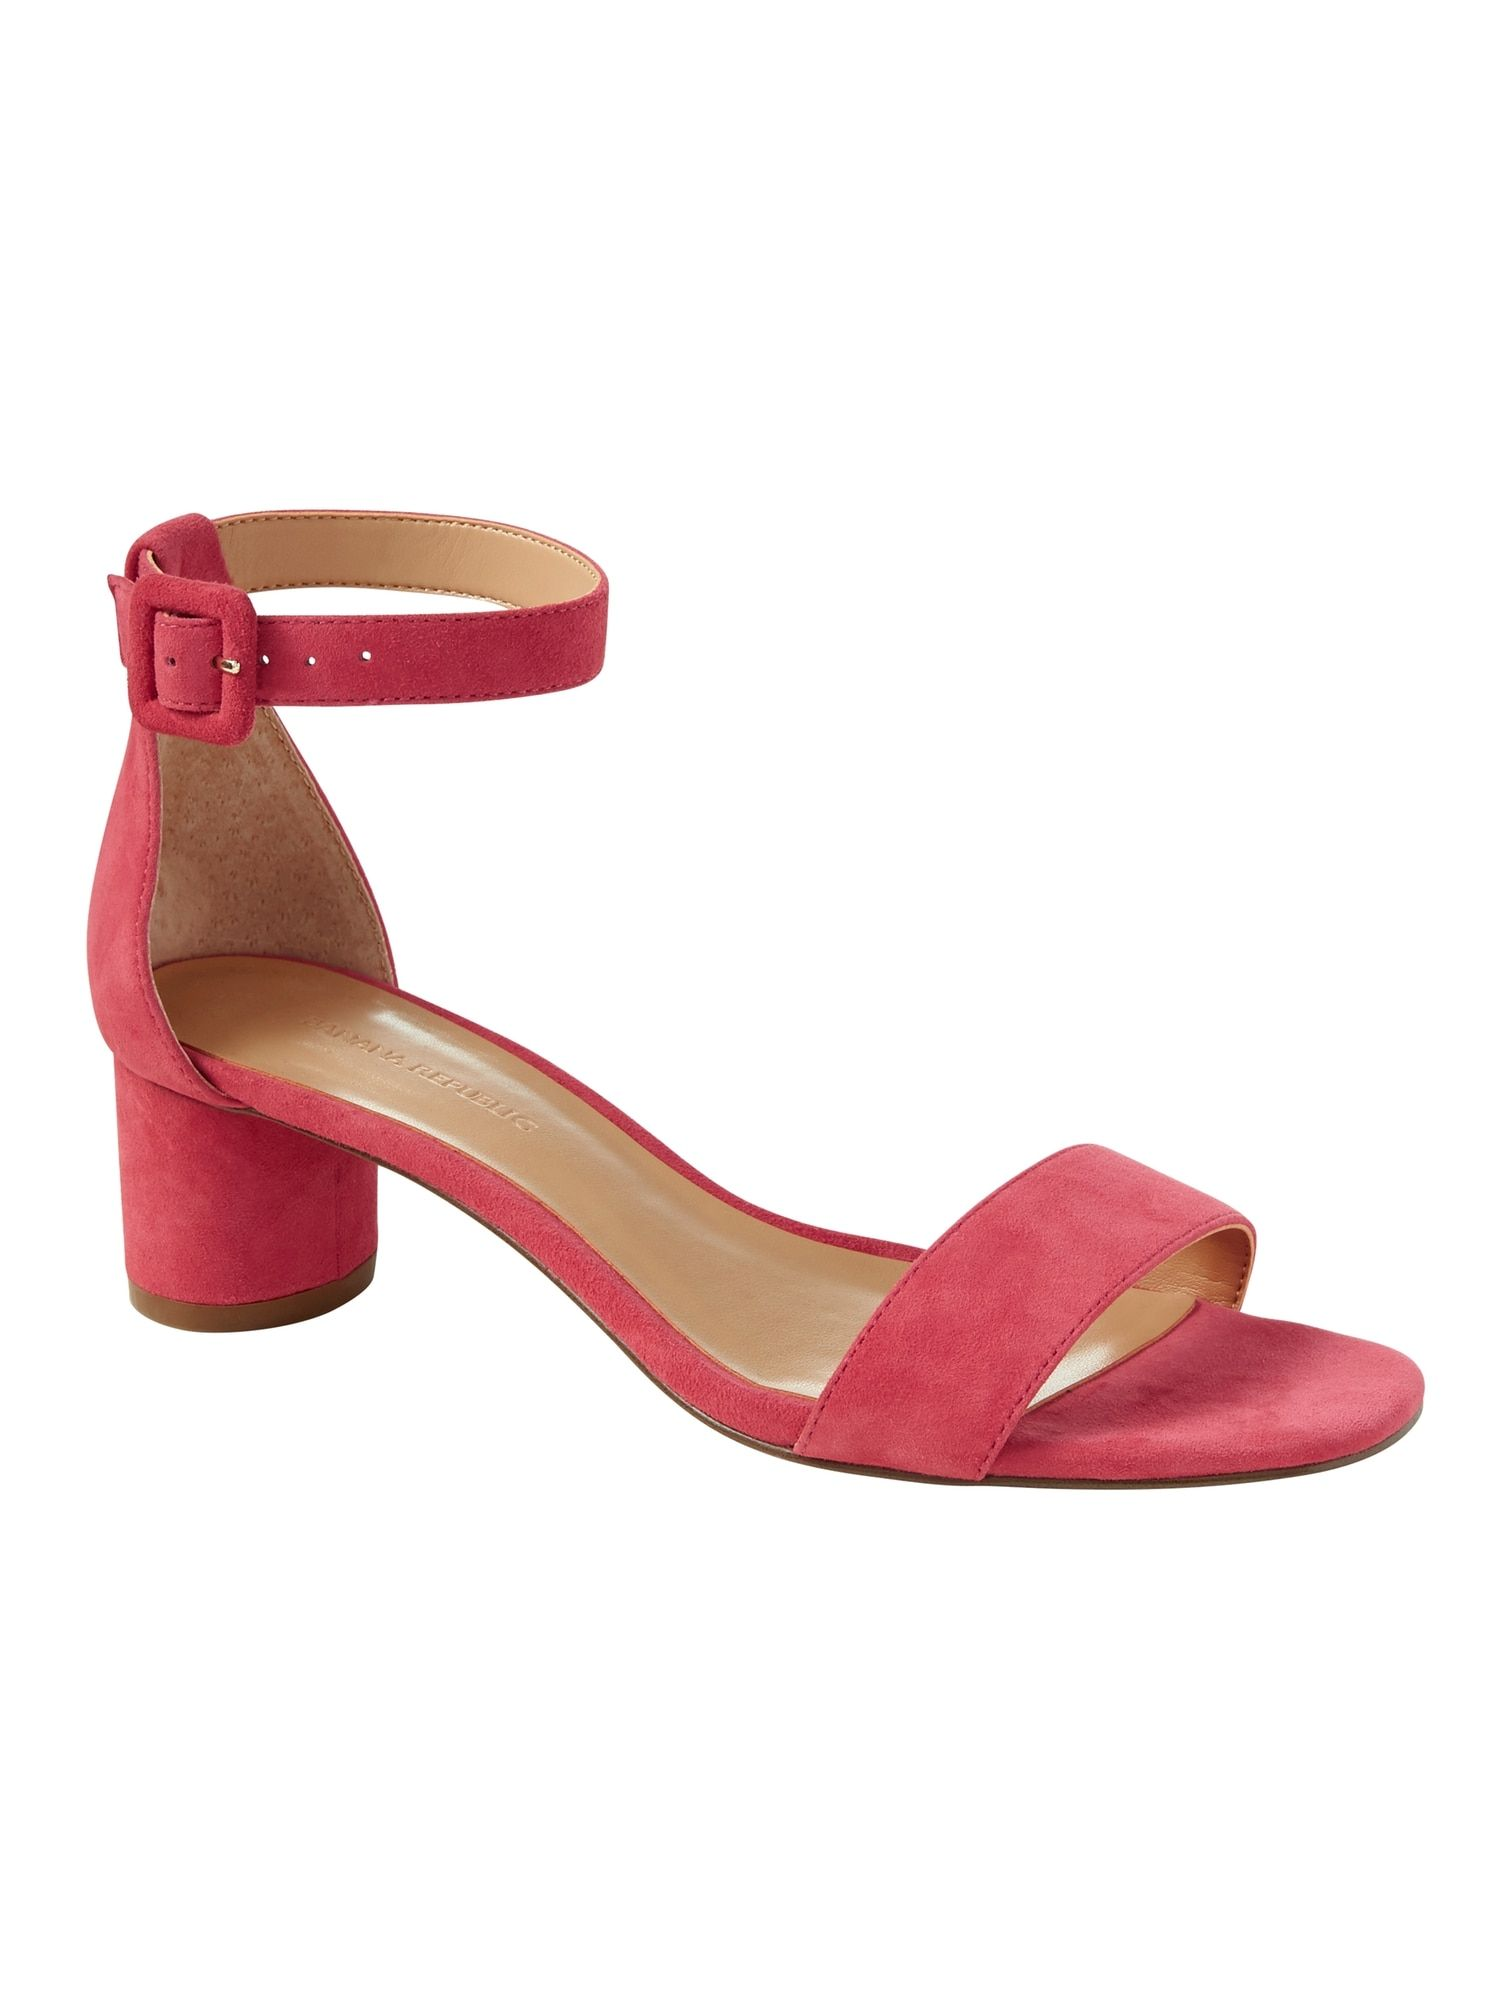 3ec118c2180 Banana Republic. Banana Republic Low Block Heel Sandal ...